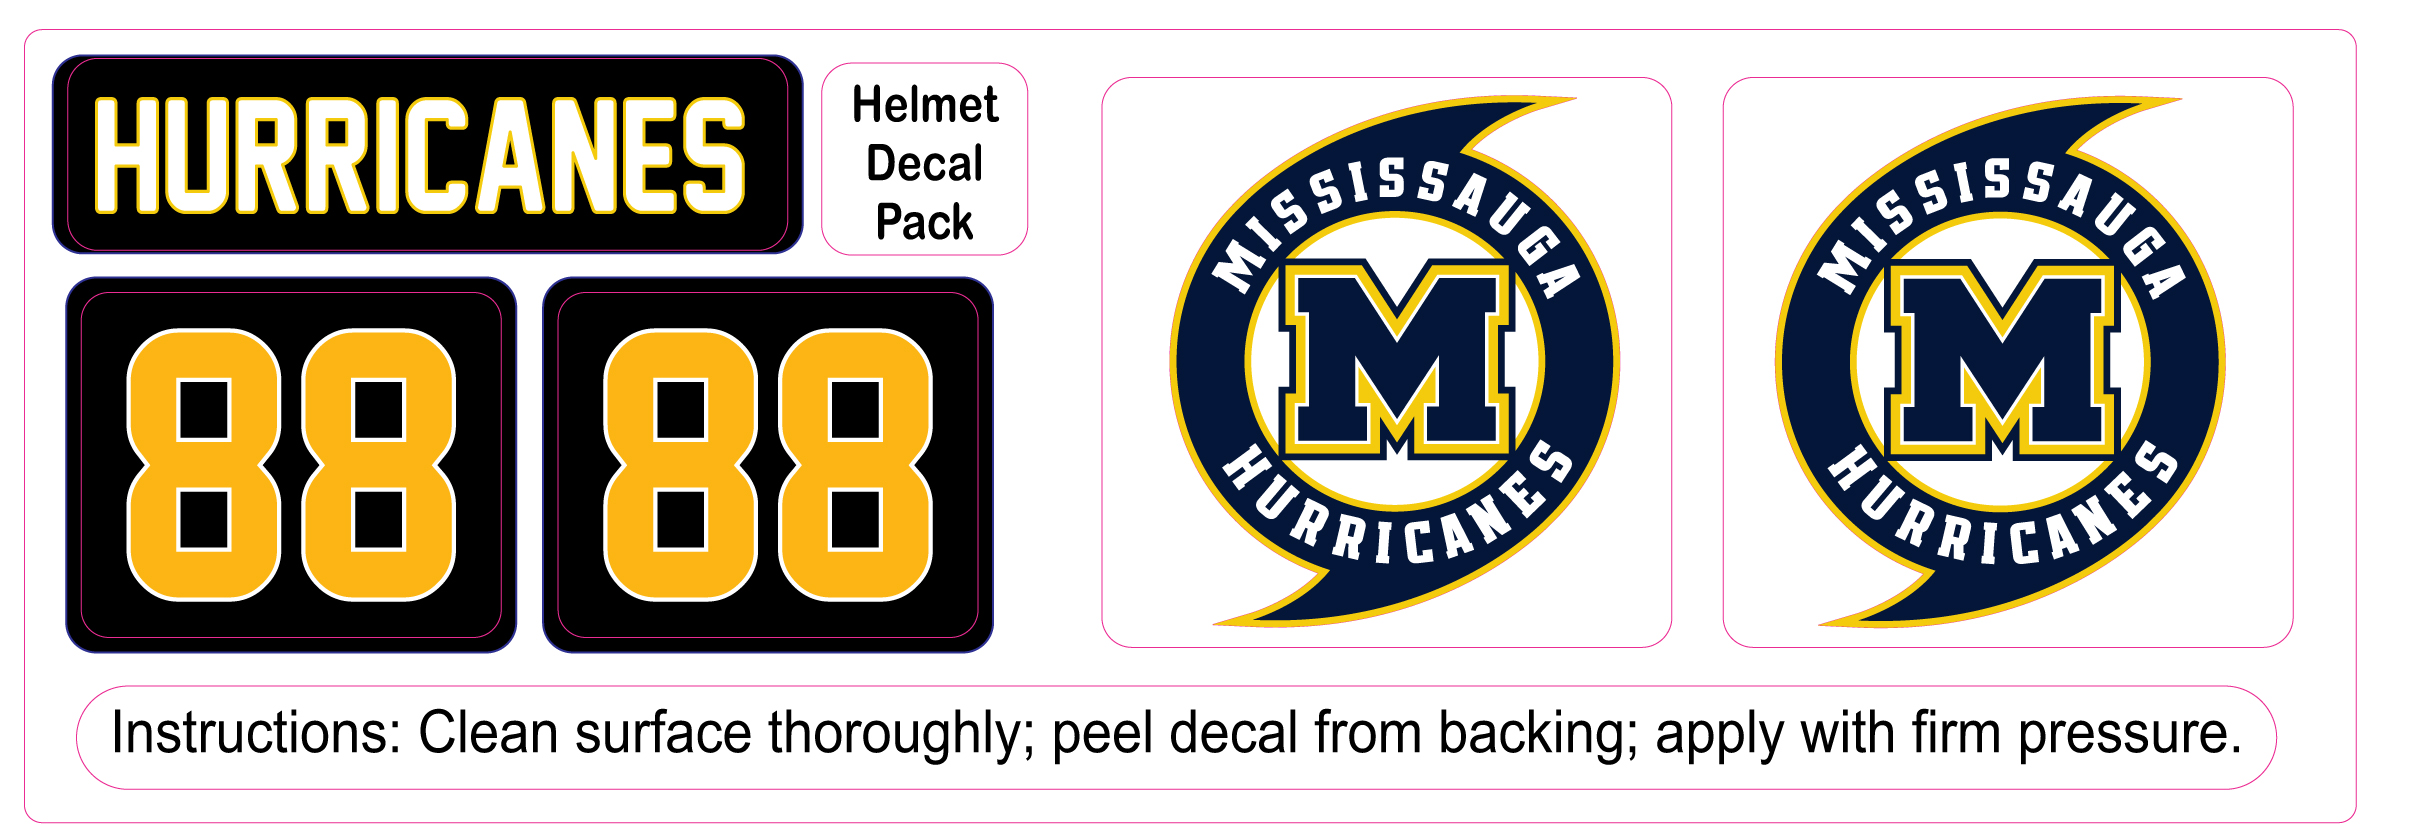 decal-pack-with-number.jpg